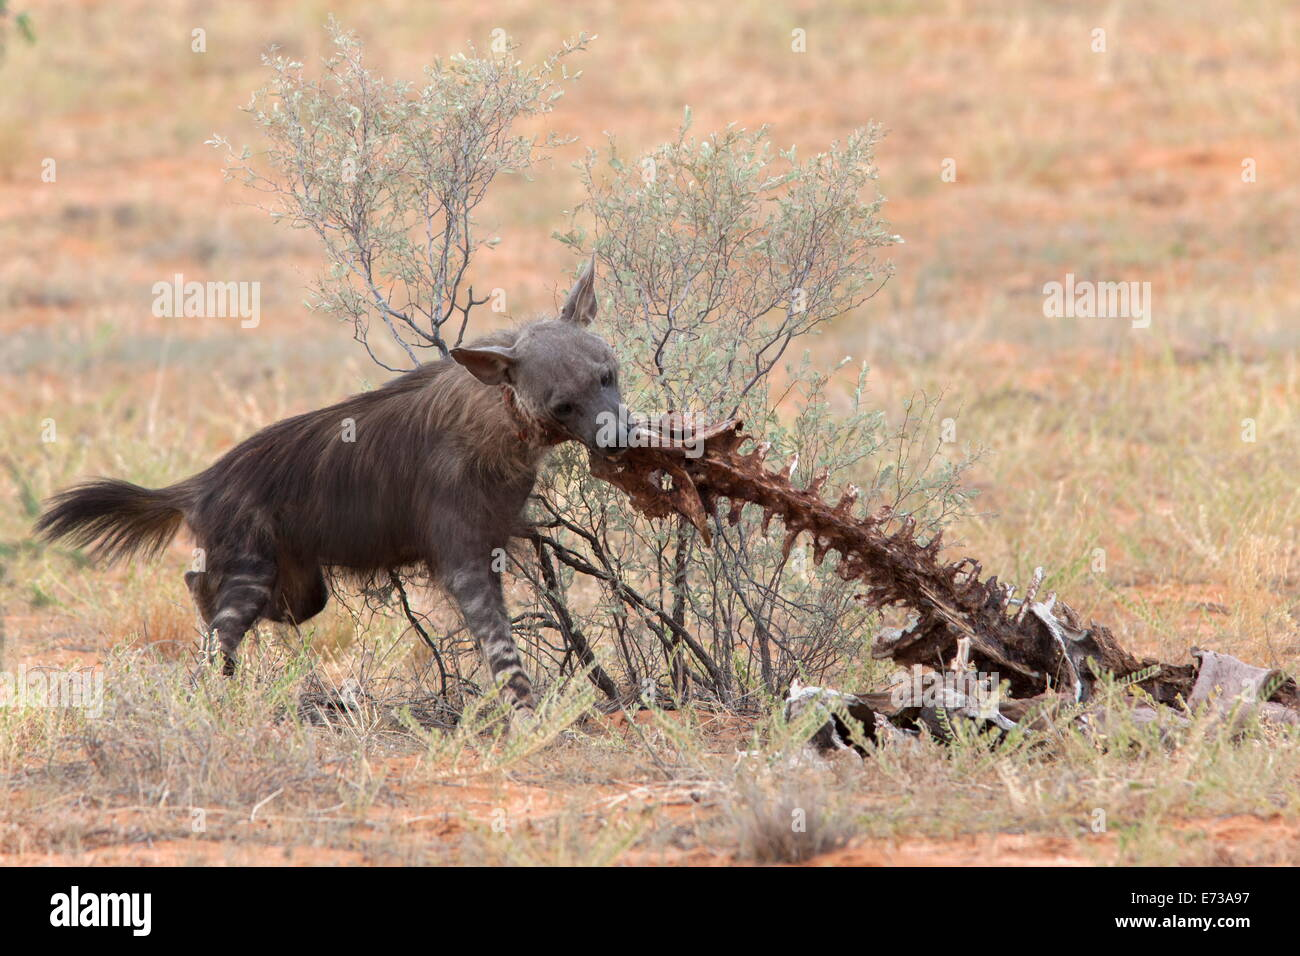 Brown hyena (Hyaena brunnea) scavenging remains of lion kill, Kgalagadi Transfrontier National Park, Northern Cape, - Stock Image